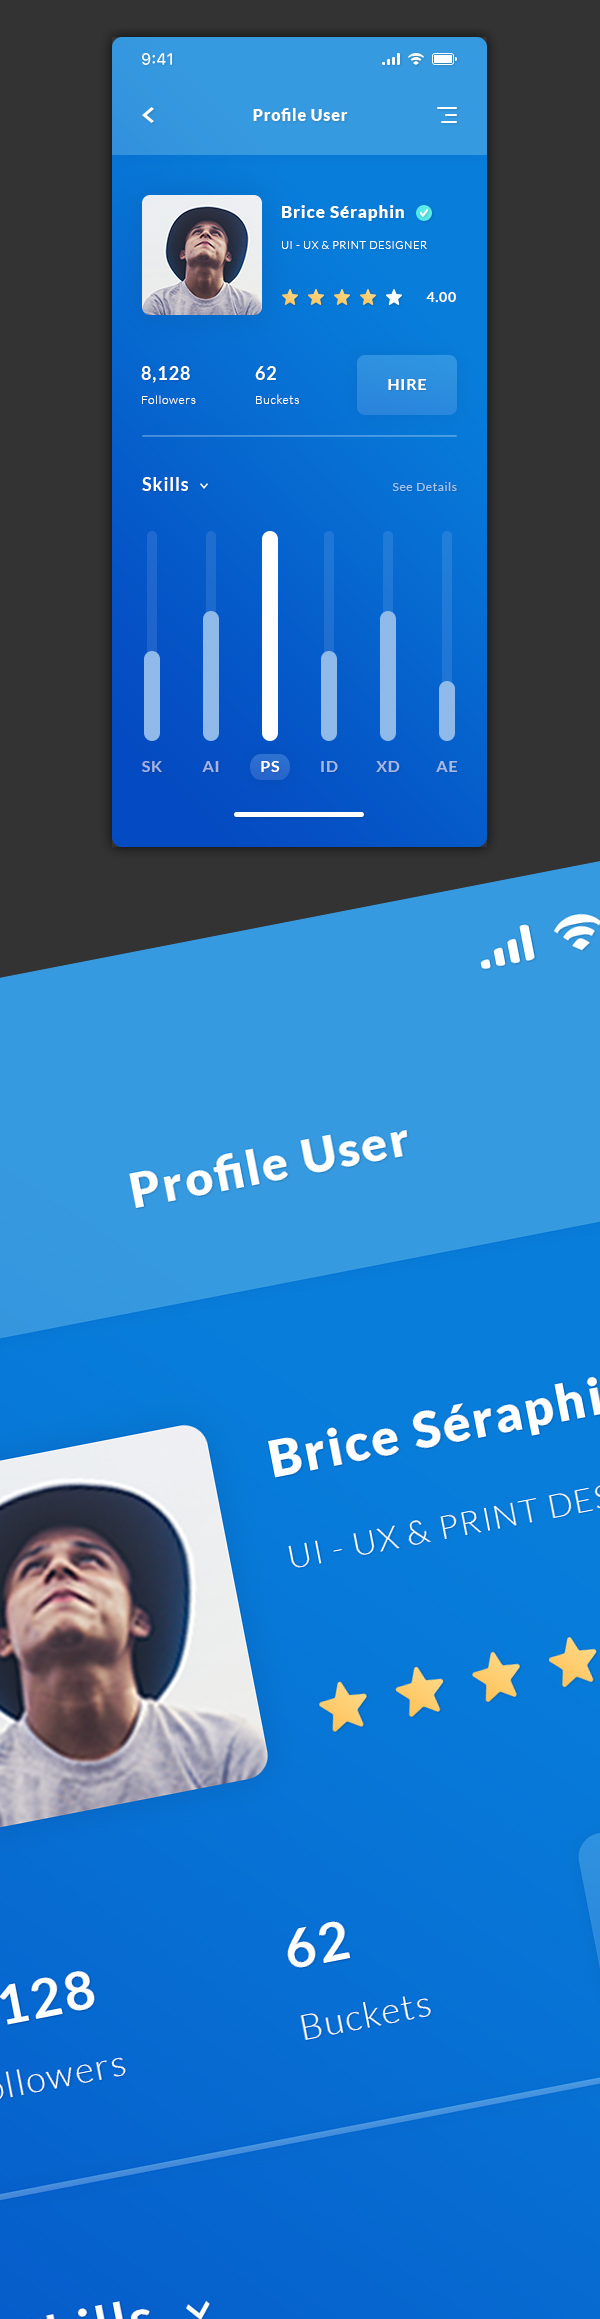 Free Profile User & Dashboard - App UI / UX